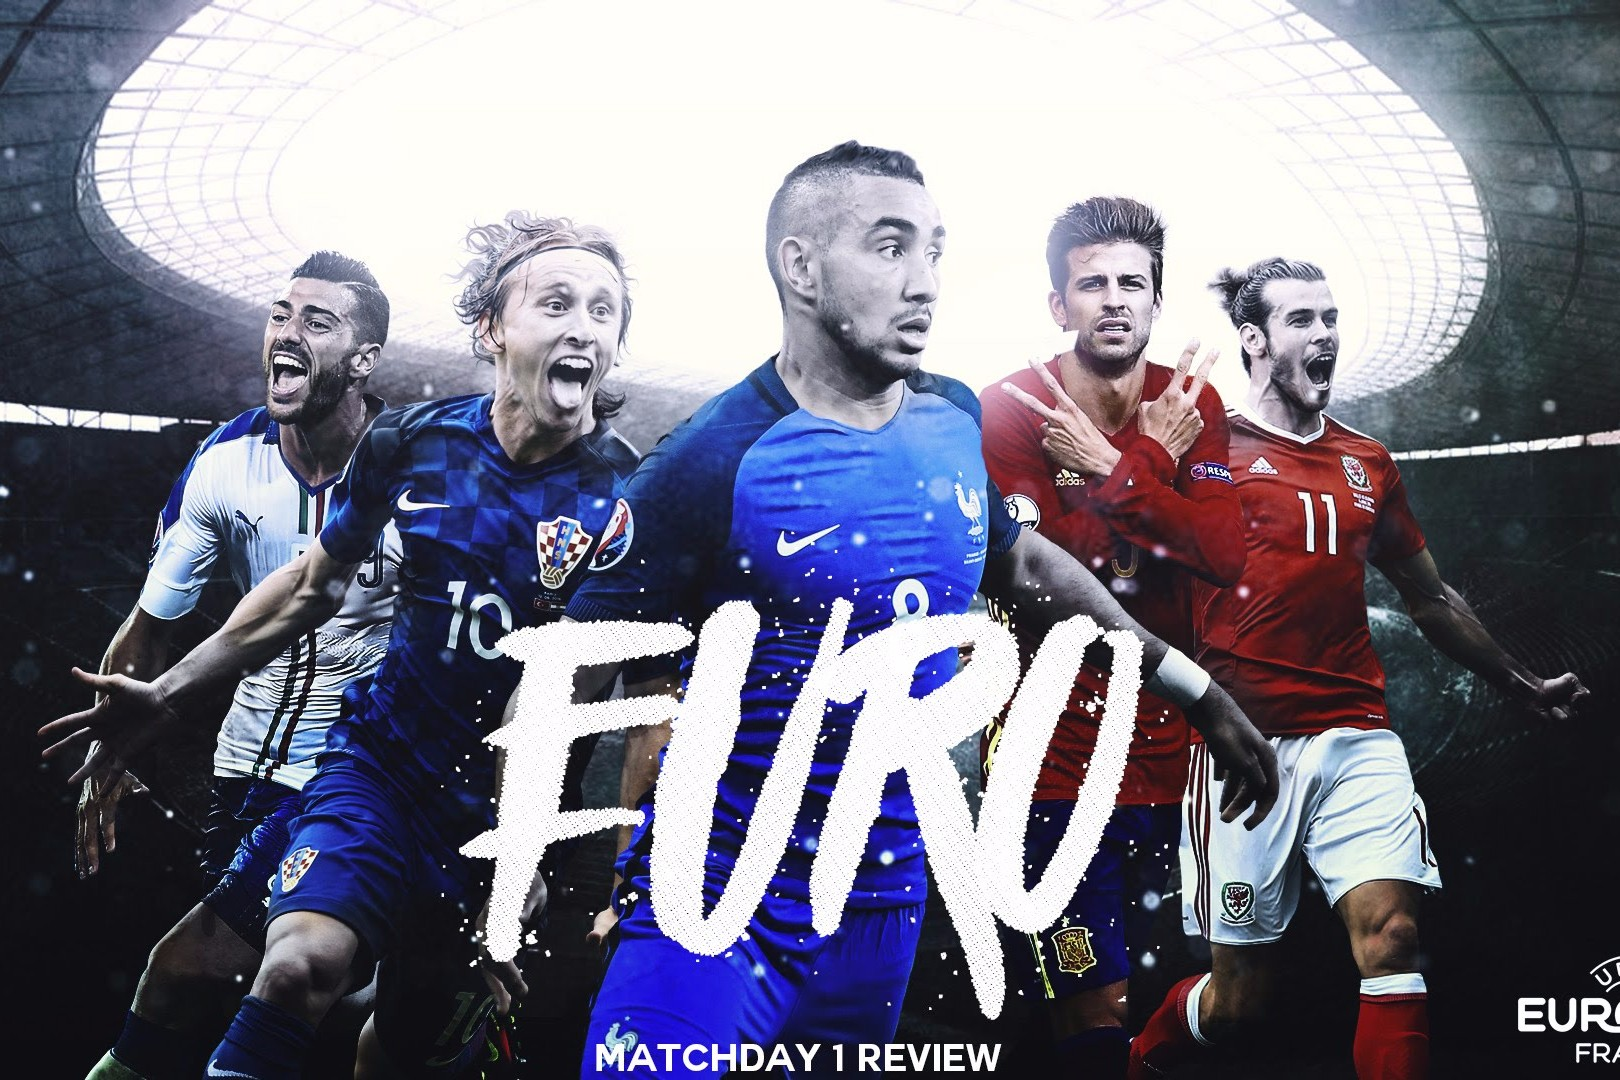 The Best of Match day 1 at Euro 2016